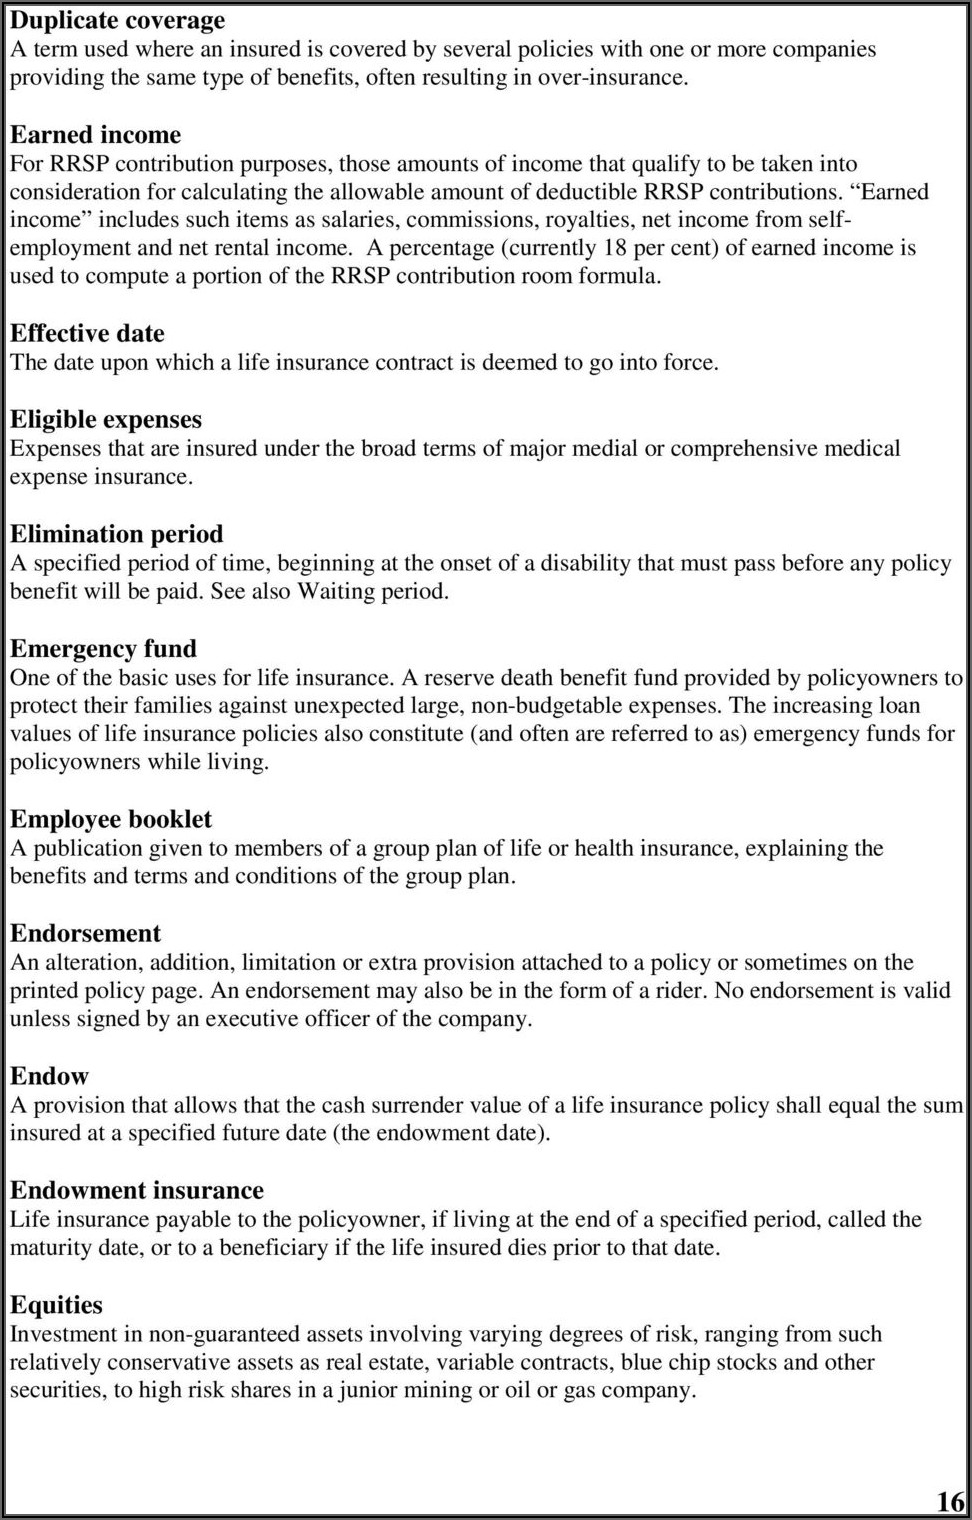 Banner Life Insurance Collateral Assignment Form